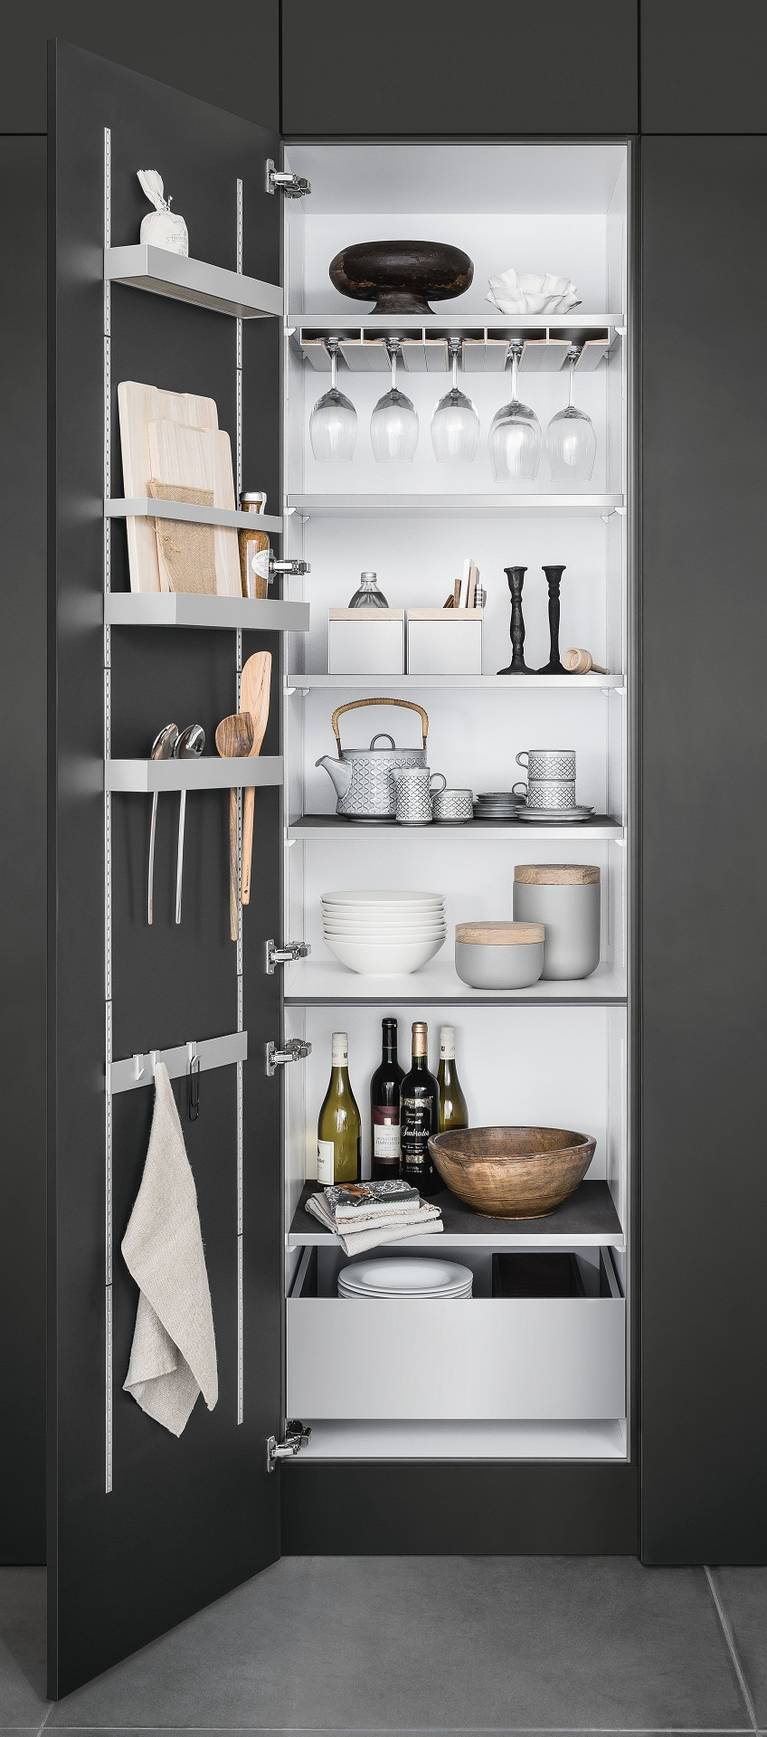 SieMatic MultiMatic interior organization system for grey cabinets creates more storage space in the kitchen